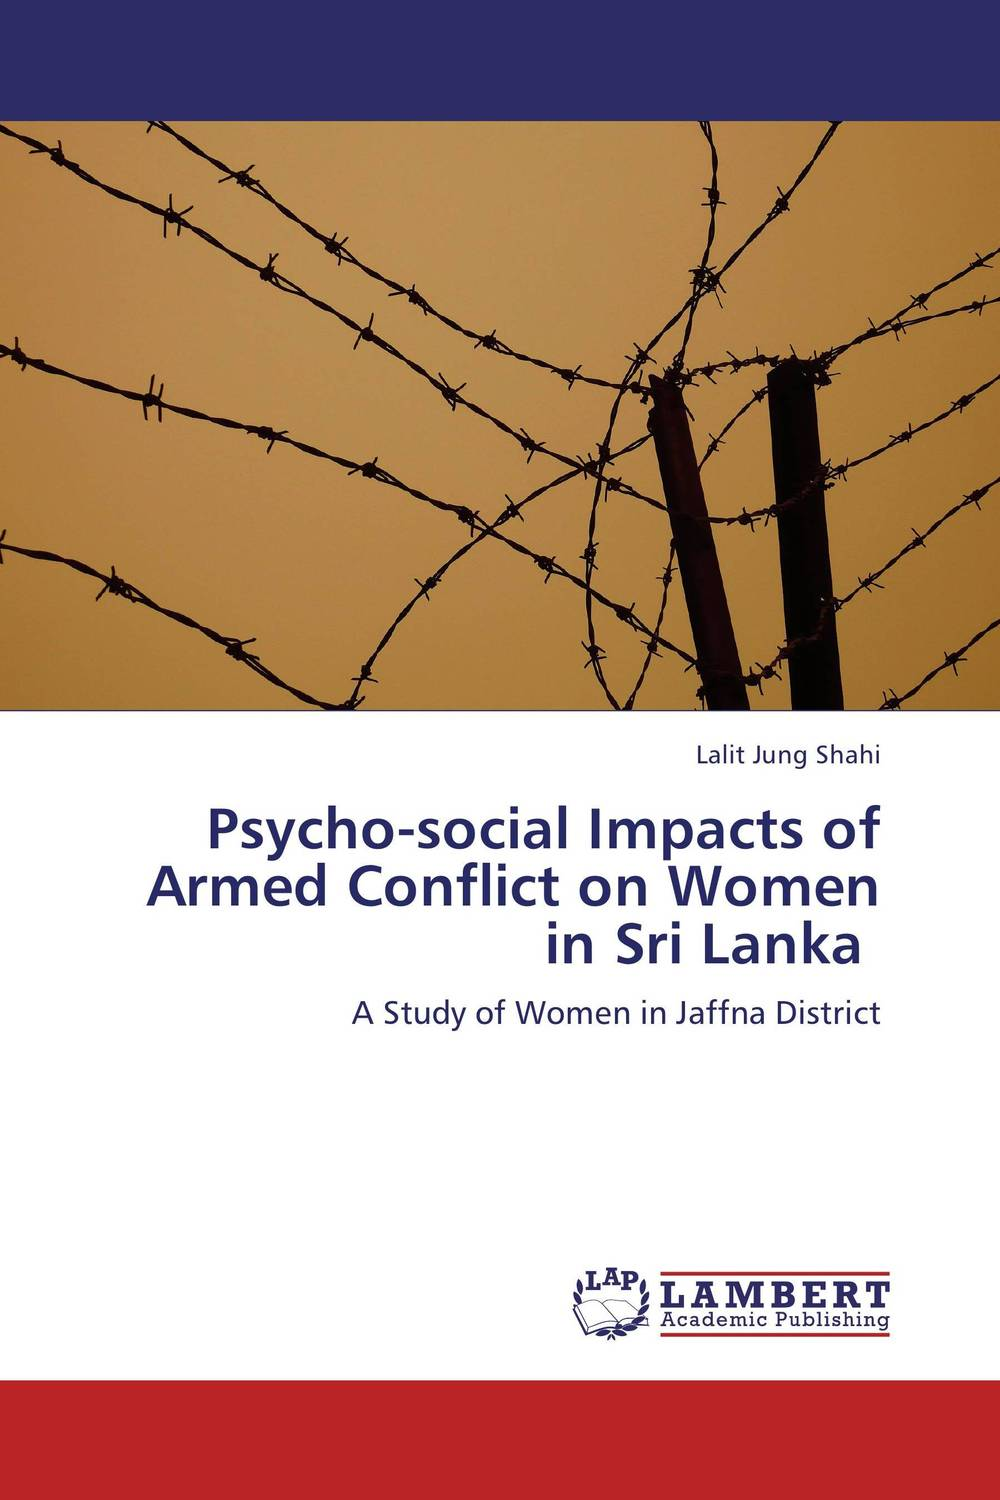 Psycho-social Impacts of Armed Conflict on Women in Sri Lanka